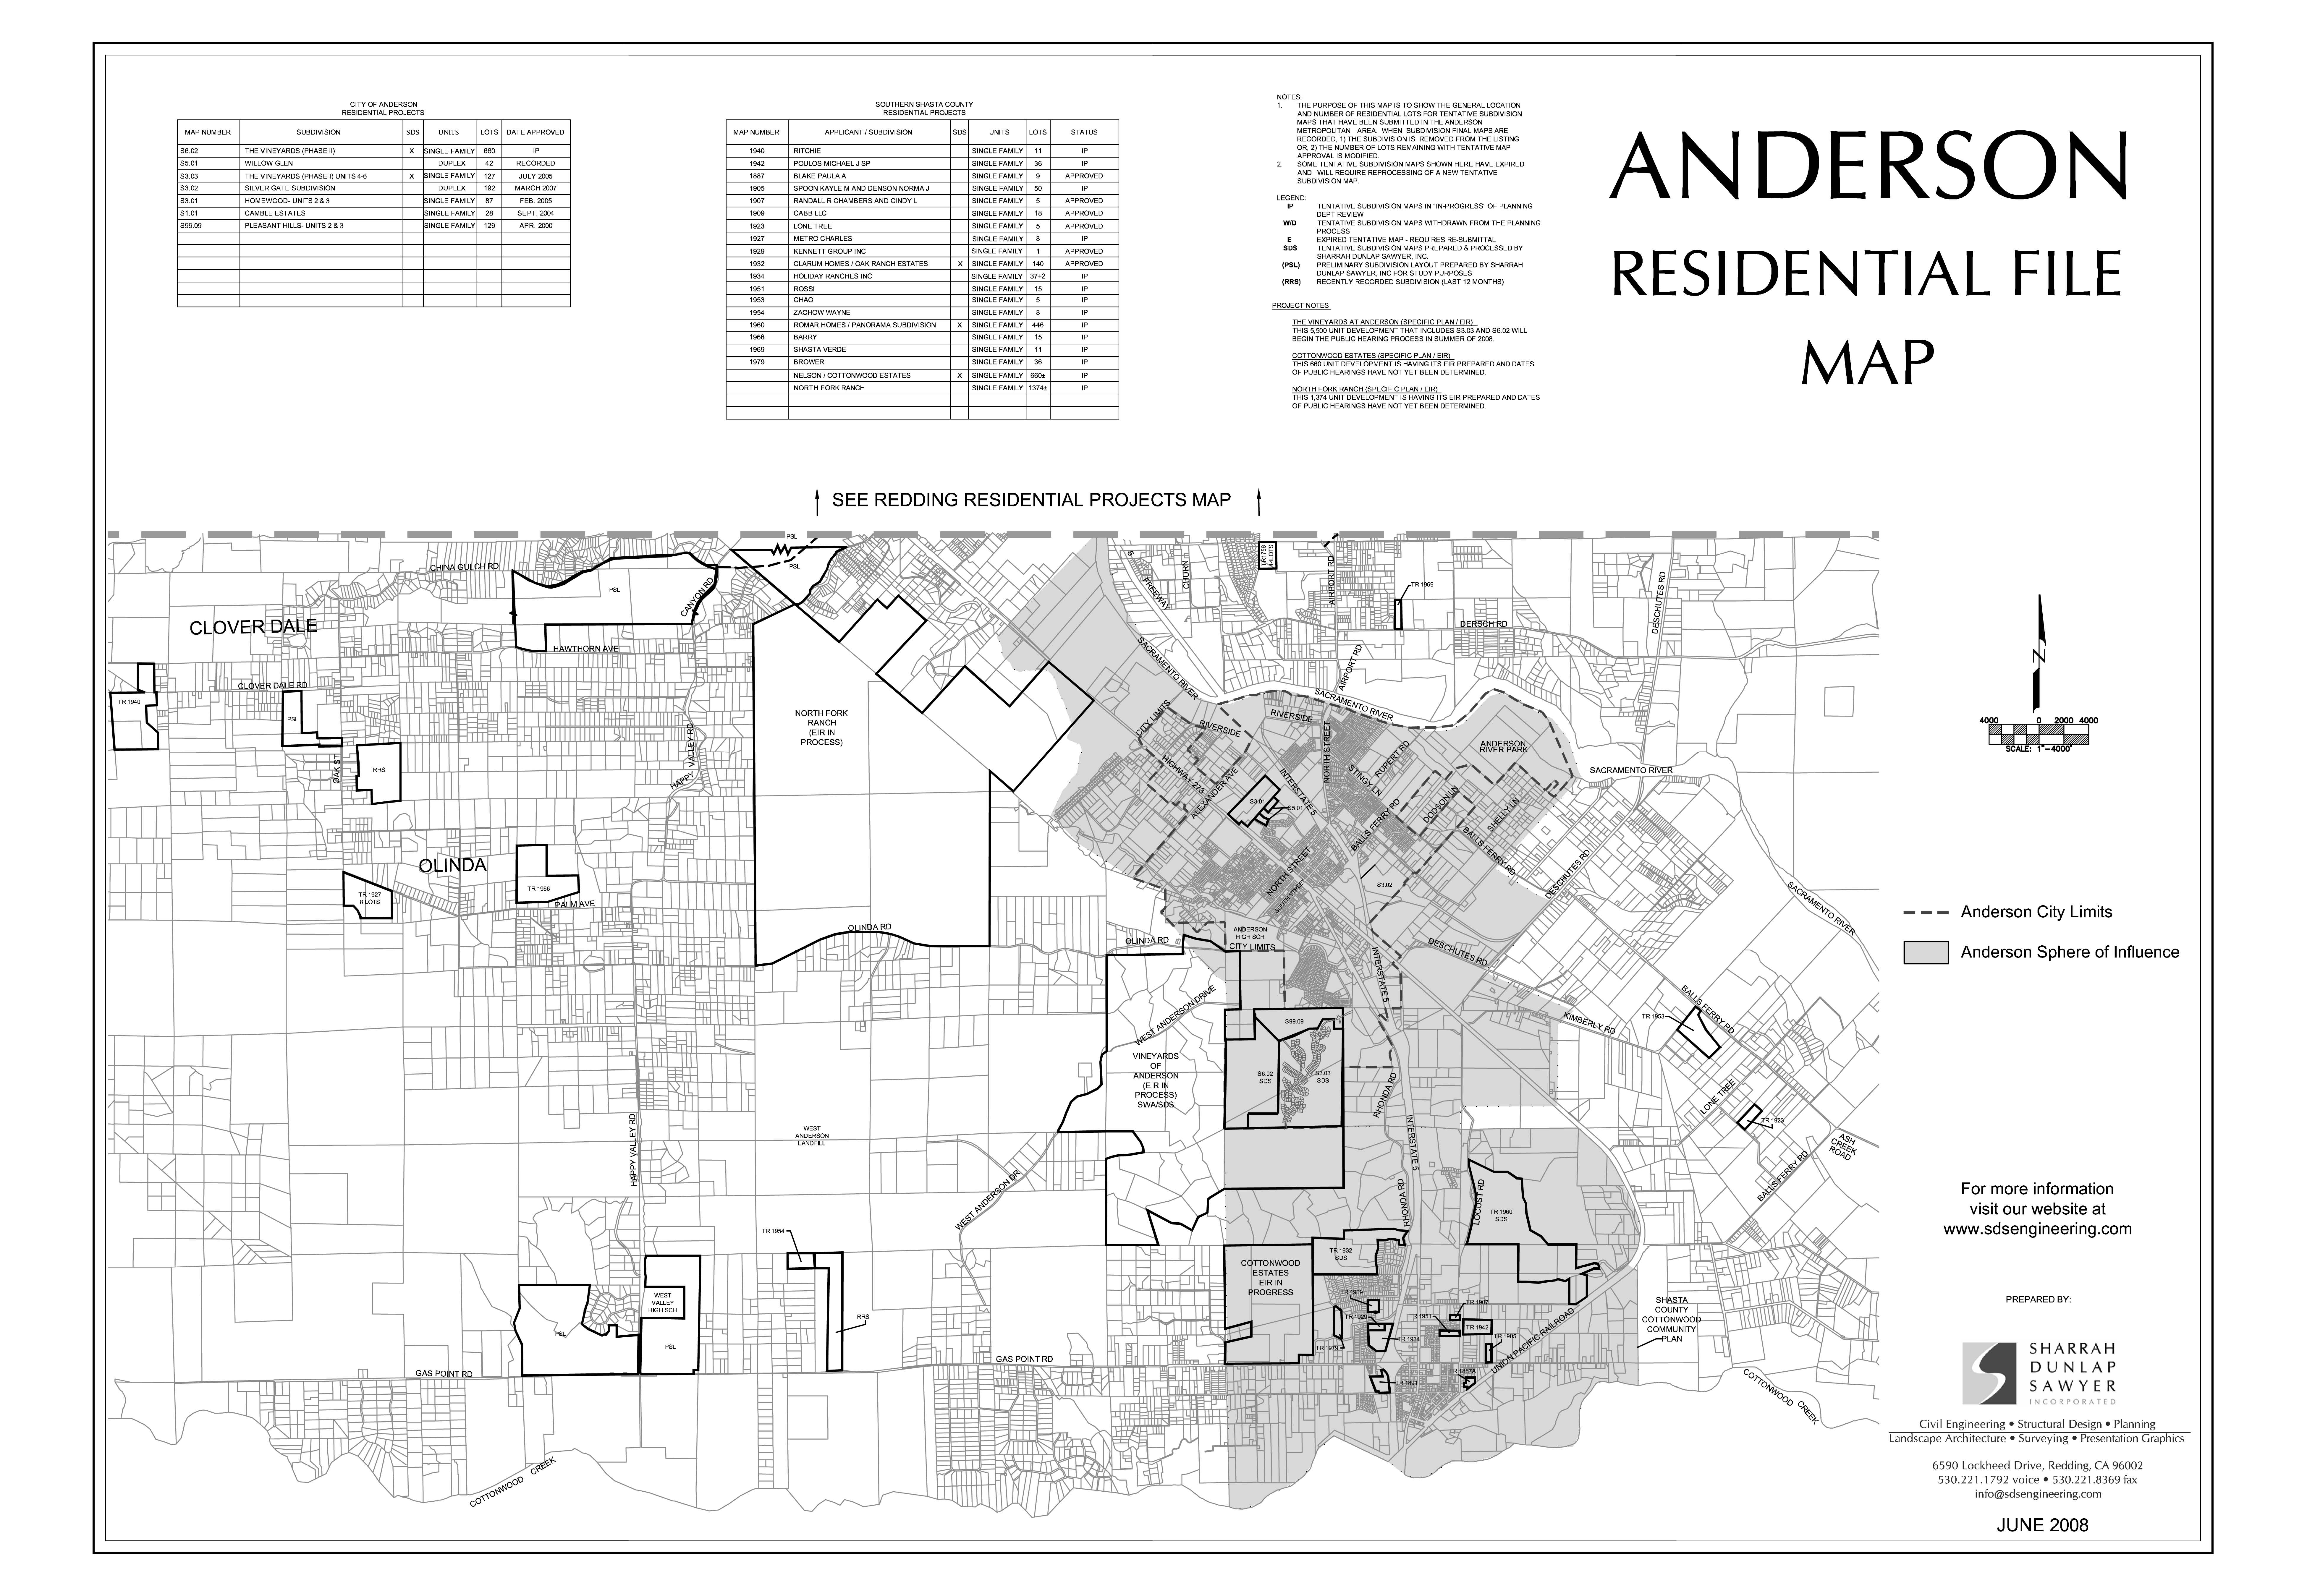 Anderson Residential Map 2008